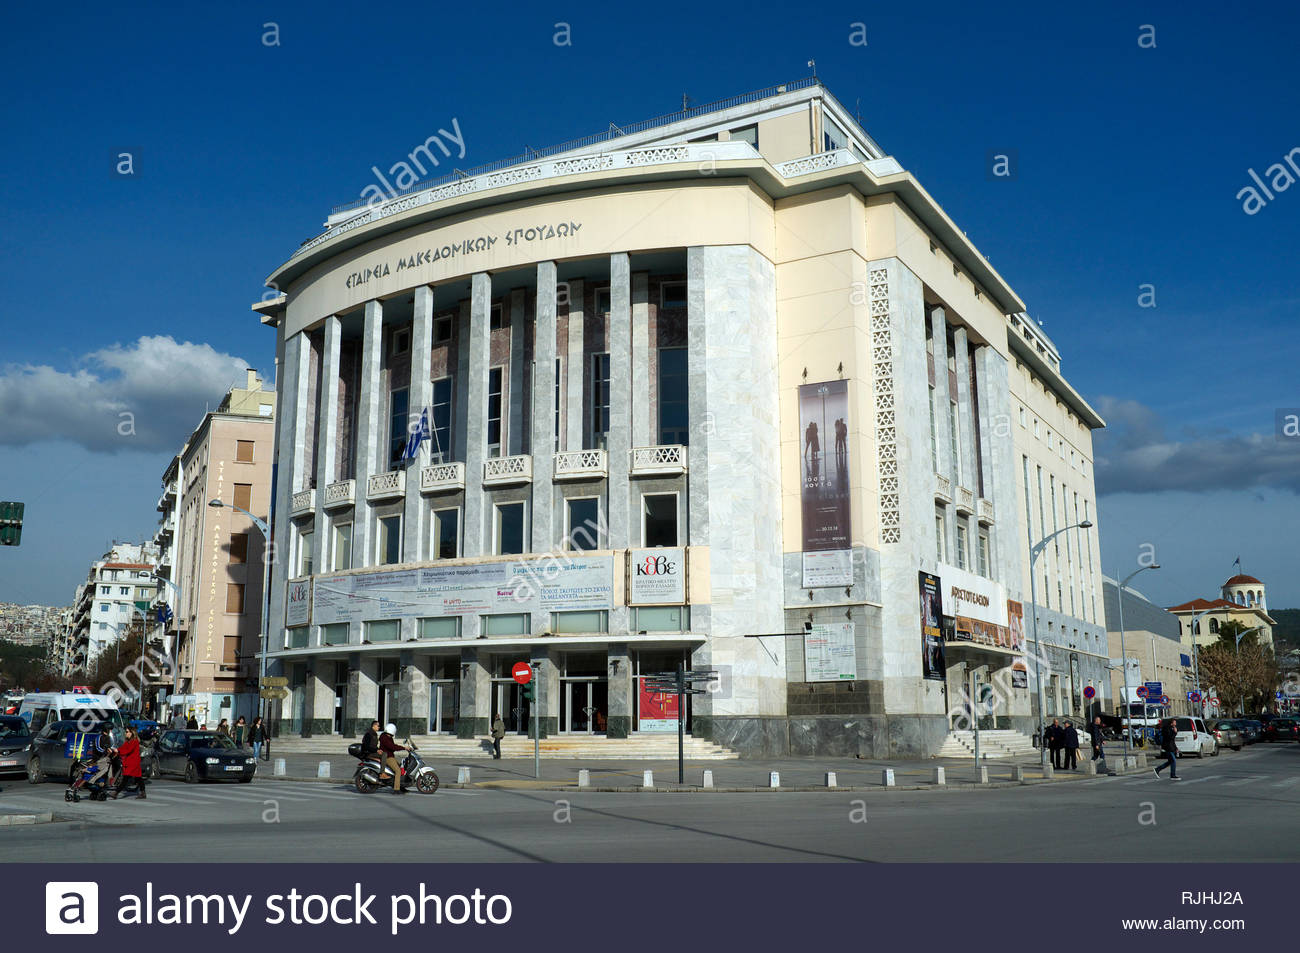 Gallery of Society of Macedonian Studies, in the city of Thessaloniki, Central Macedonia, Greece. Stock Photo